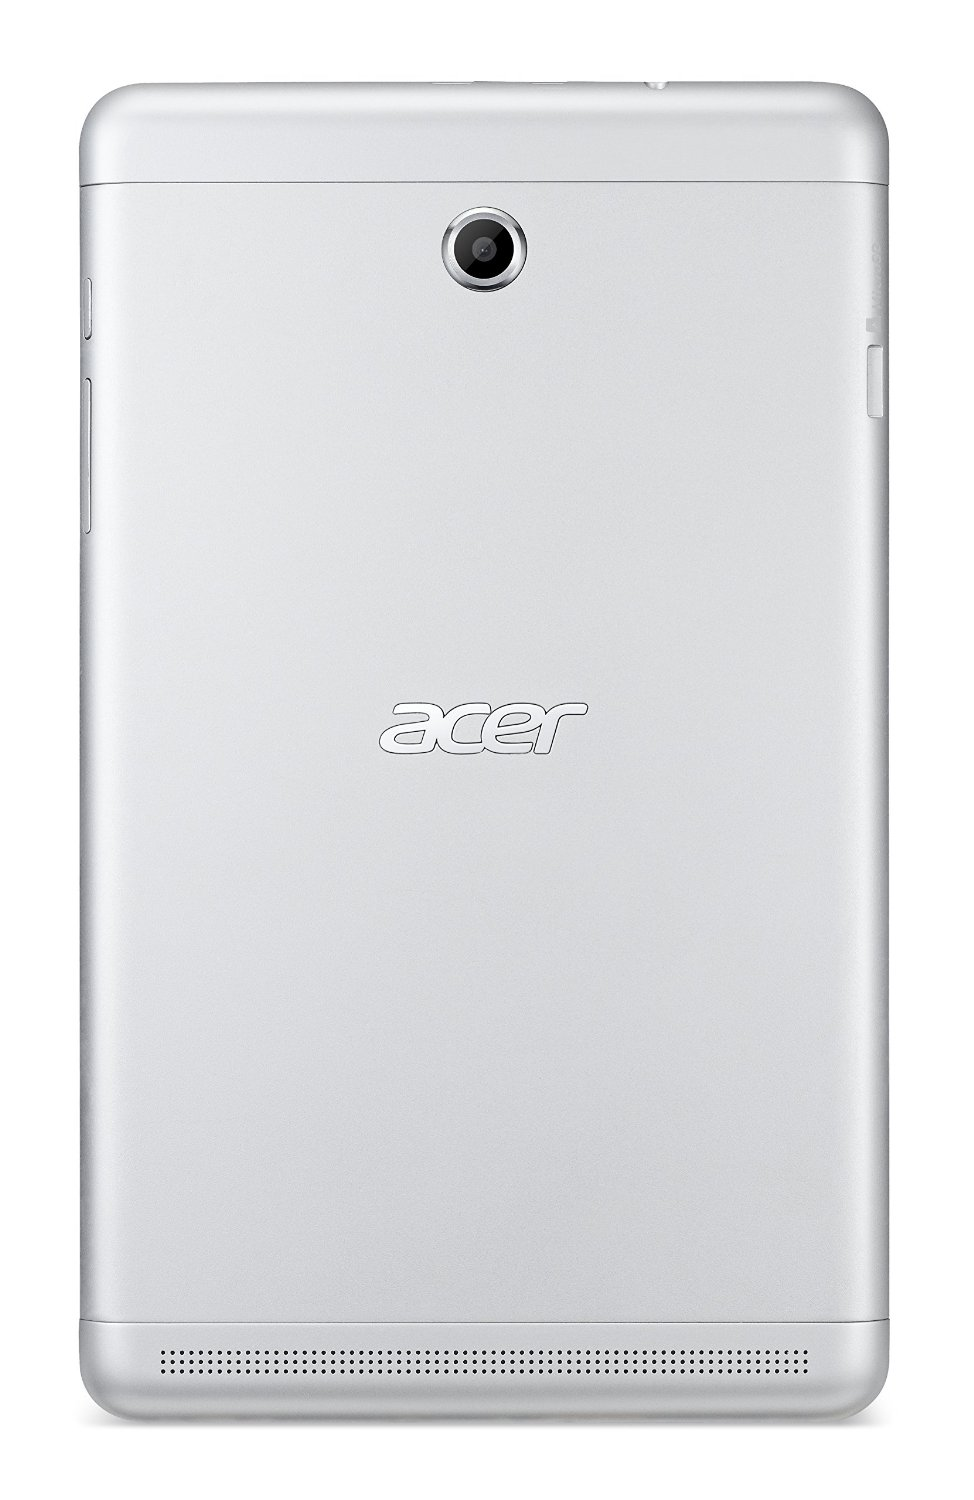 Acer Iconia Tab 8 (A1-840FHD) Release For $199 Price In US